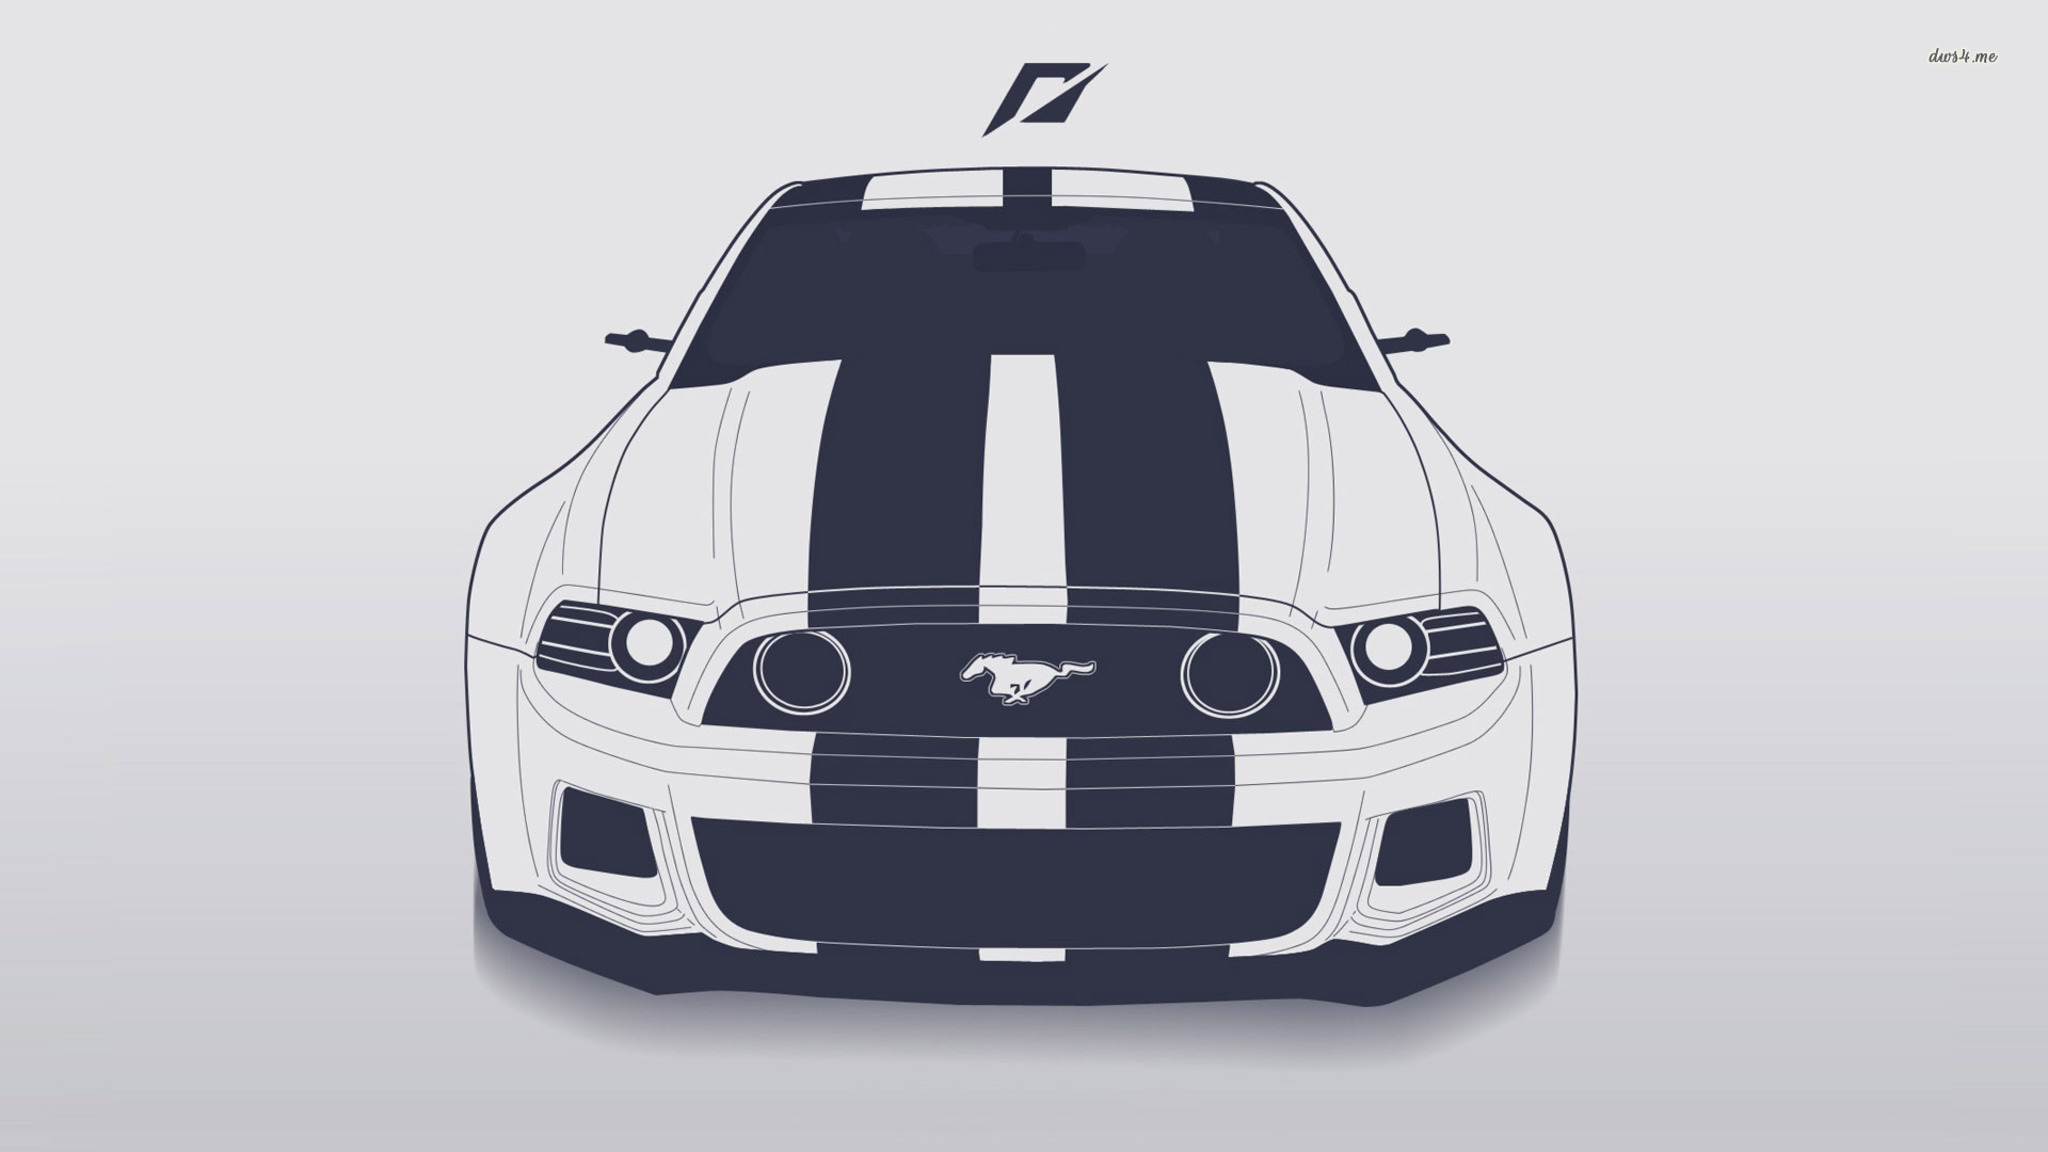 2048x1152 2048x1152 Ford Mustang Vector 2048x1152 Resolution Hd 4k